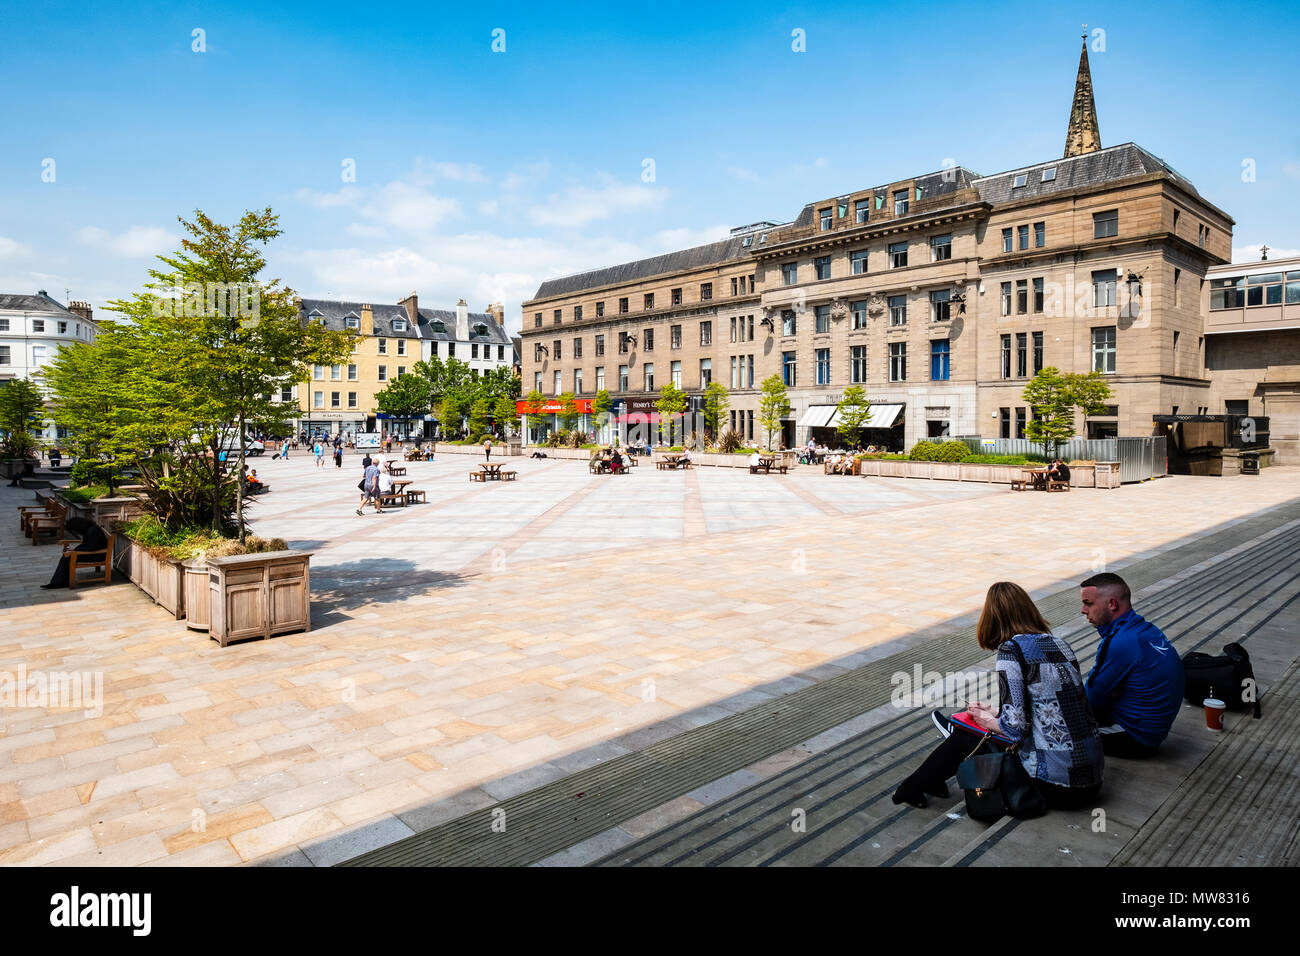 View of the City Square from Caird Hall, Dundee, Scotland, UK - Stock Image